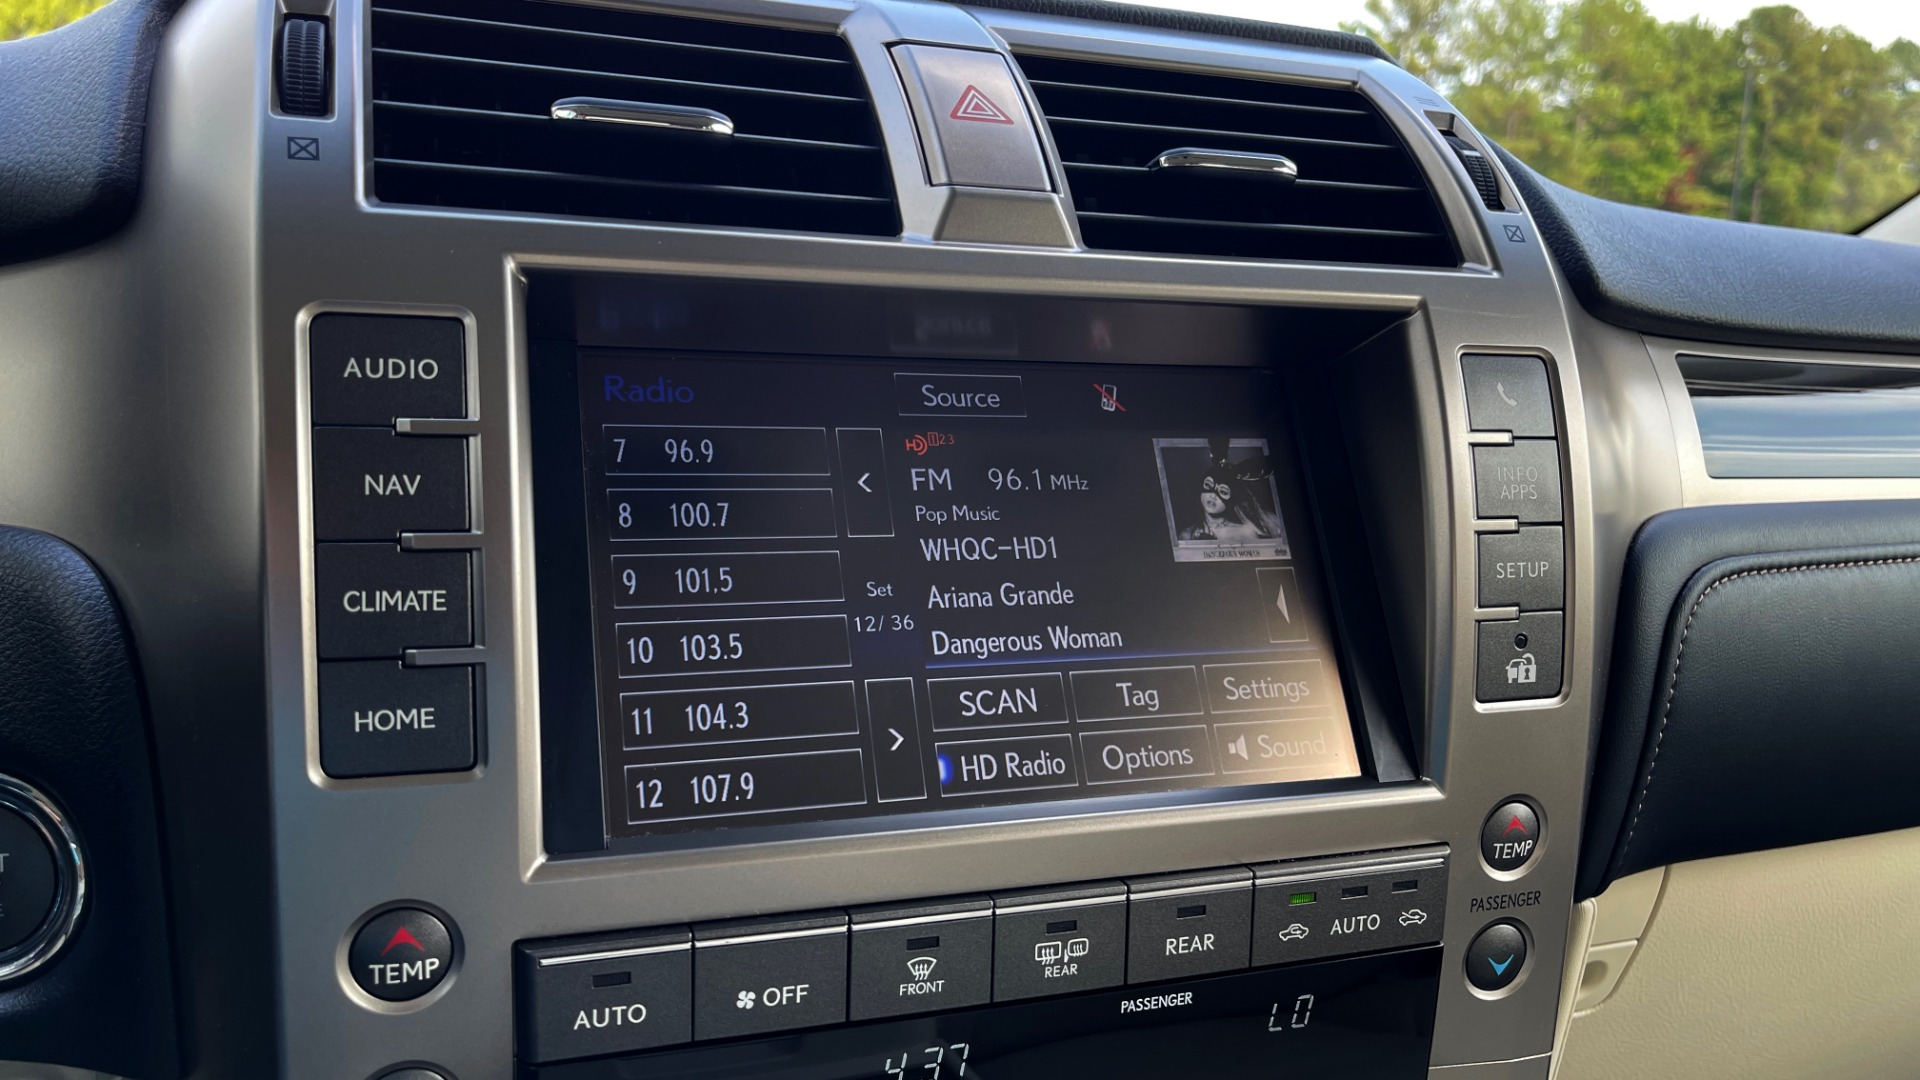 Used 2020 Lexus GX 460 PREMIUM / AWD / NAV / SUNROOF / 3-ROW / REARVIEW for sale $54,495 at Formula Imports in Charlotte NC 28227 39